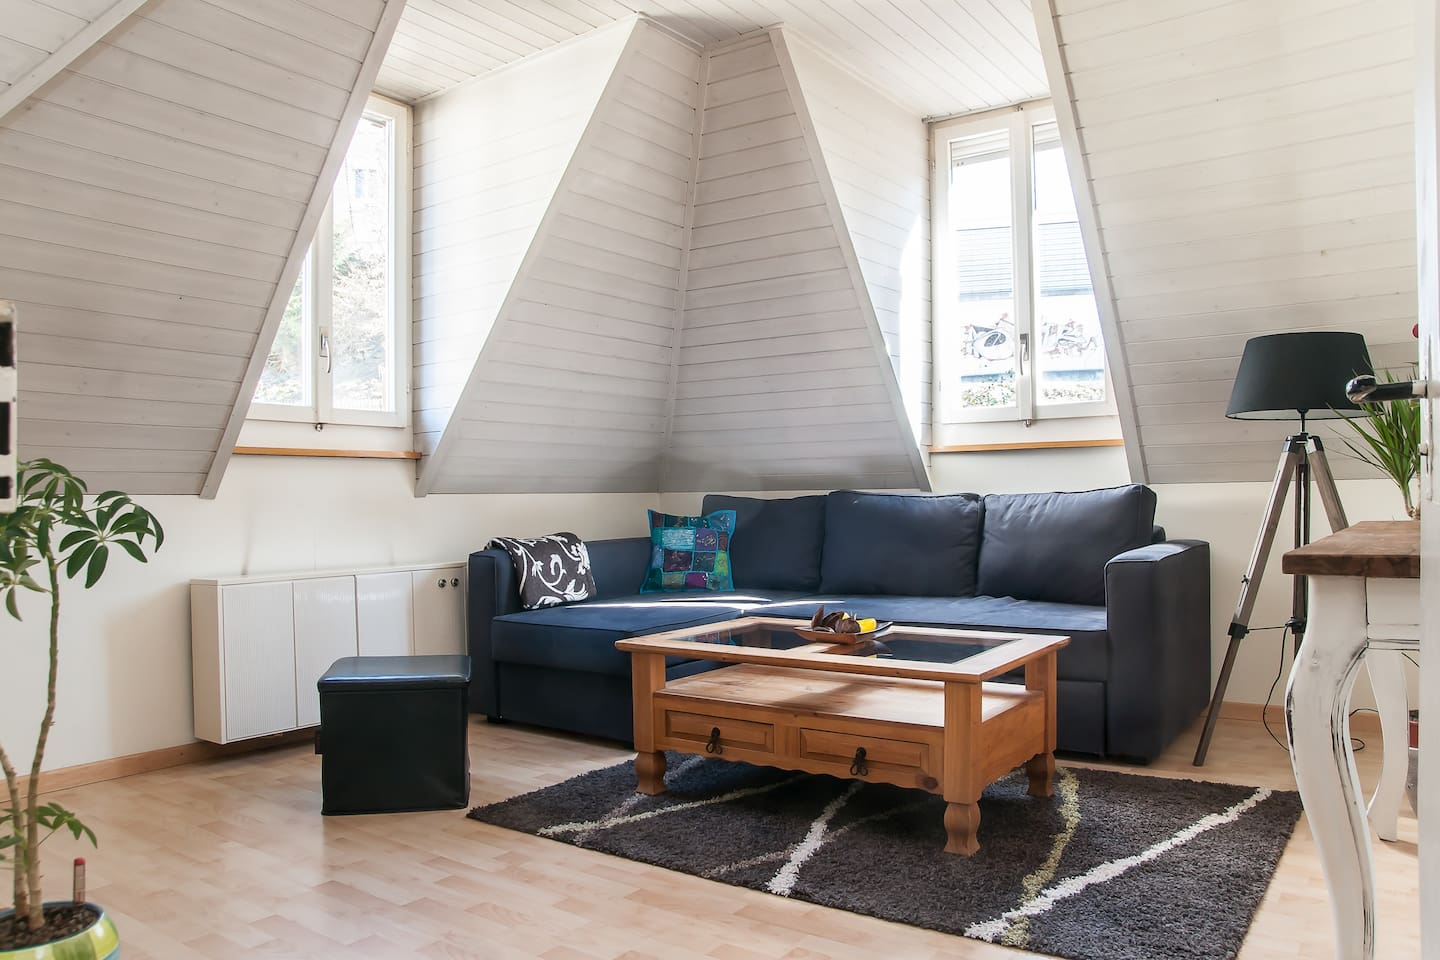 Your room: the sofa turns into a cozy bed in just a minute!